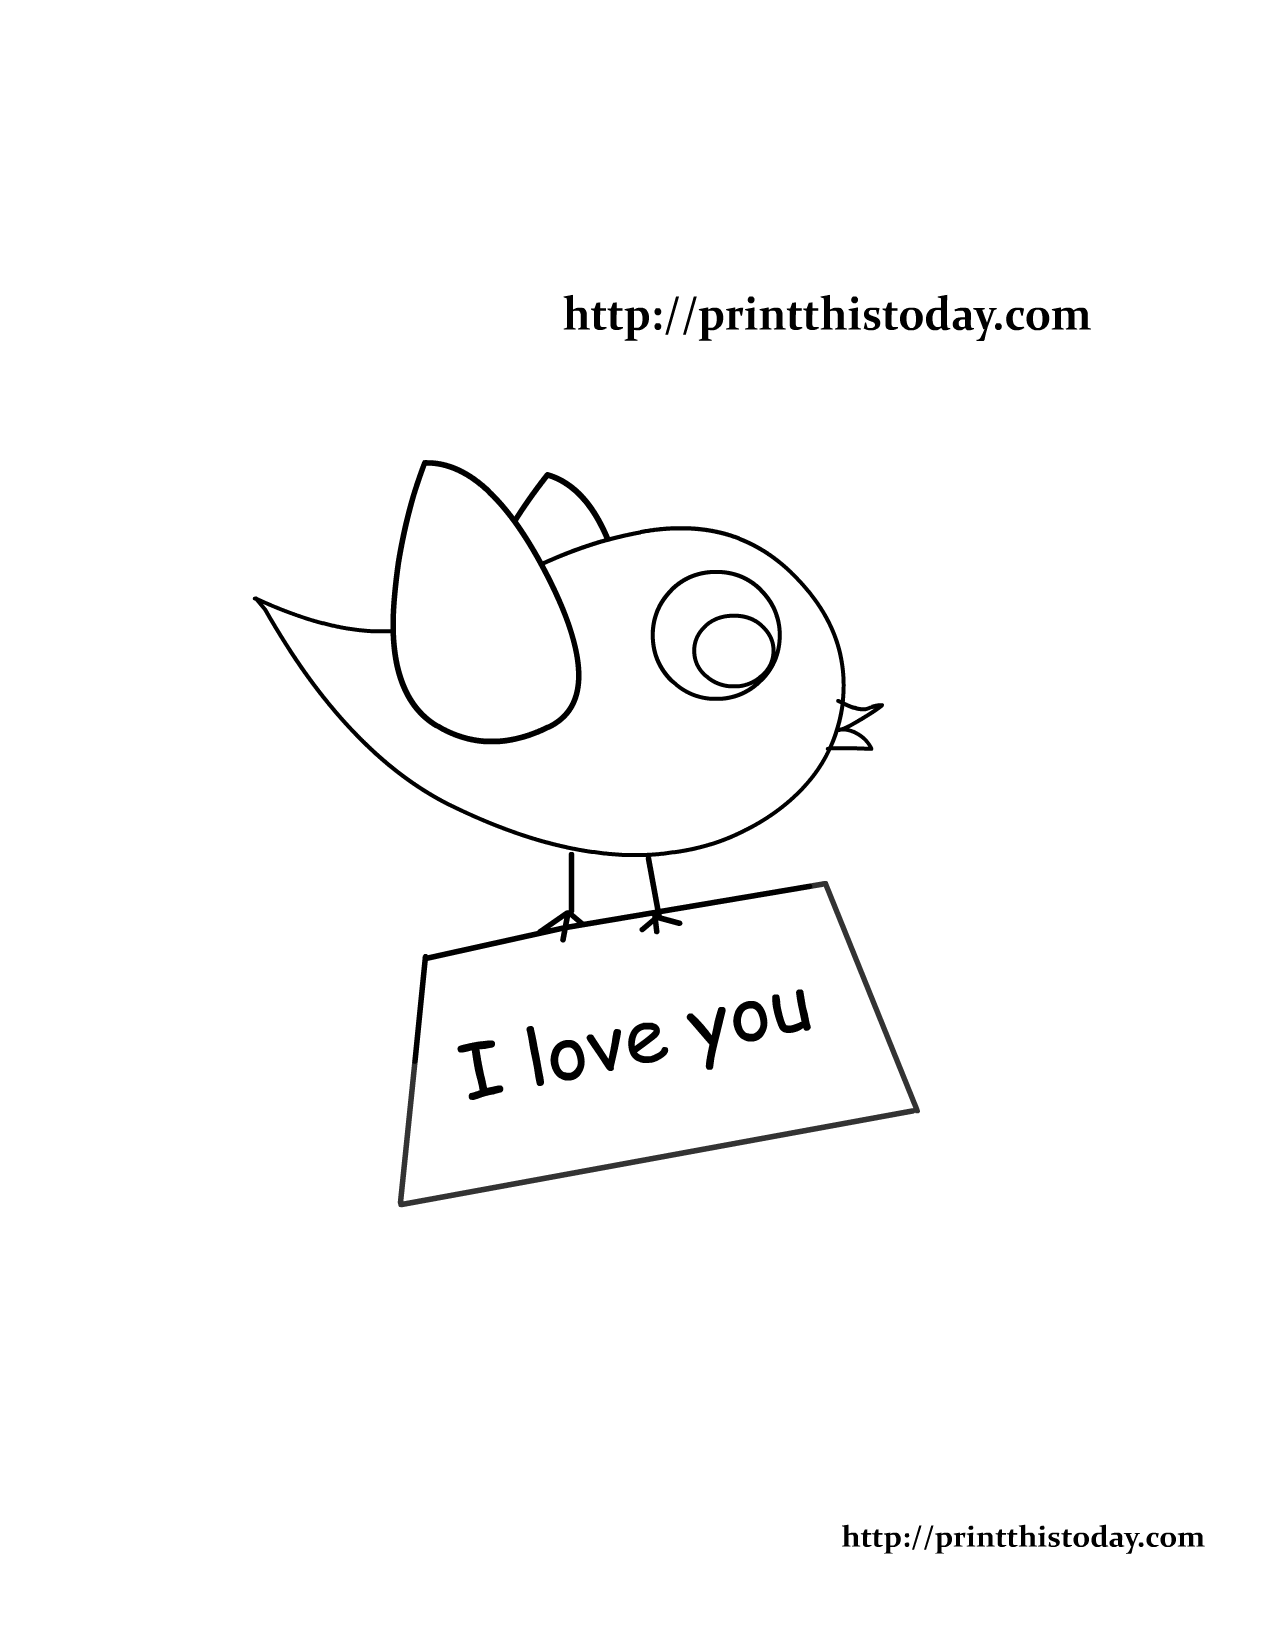 Lovebird coloring #20, Download drawings